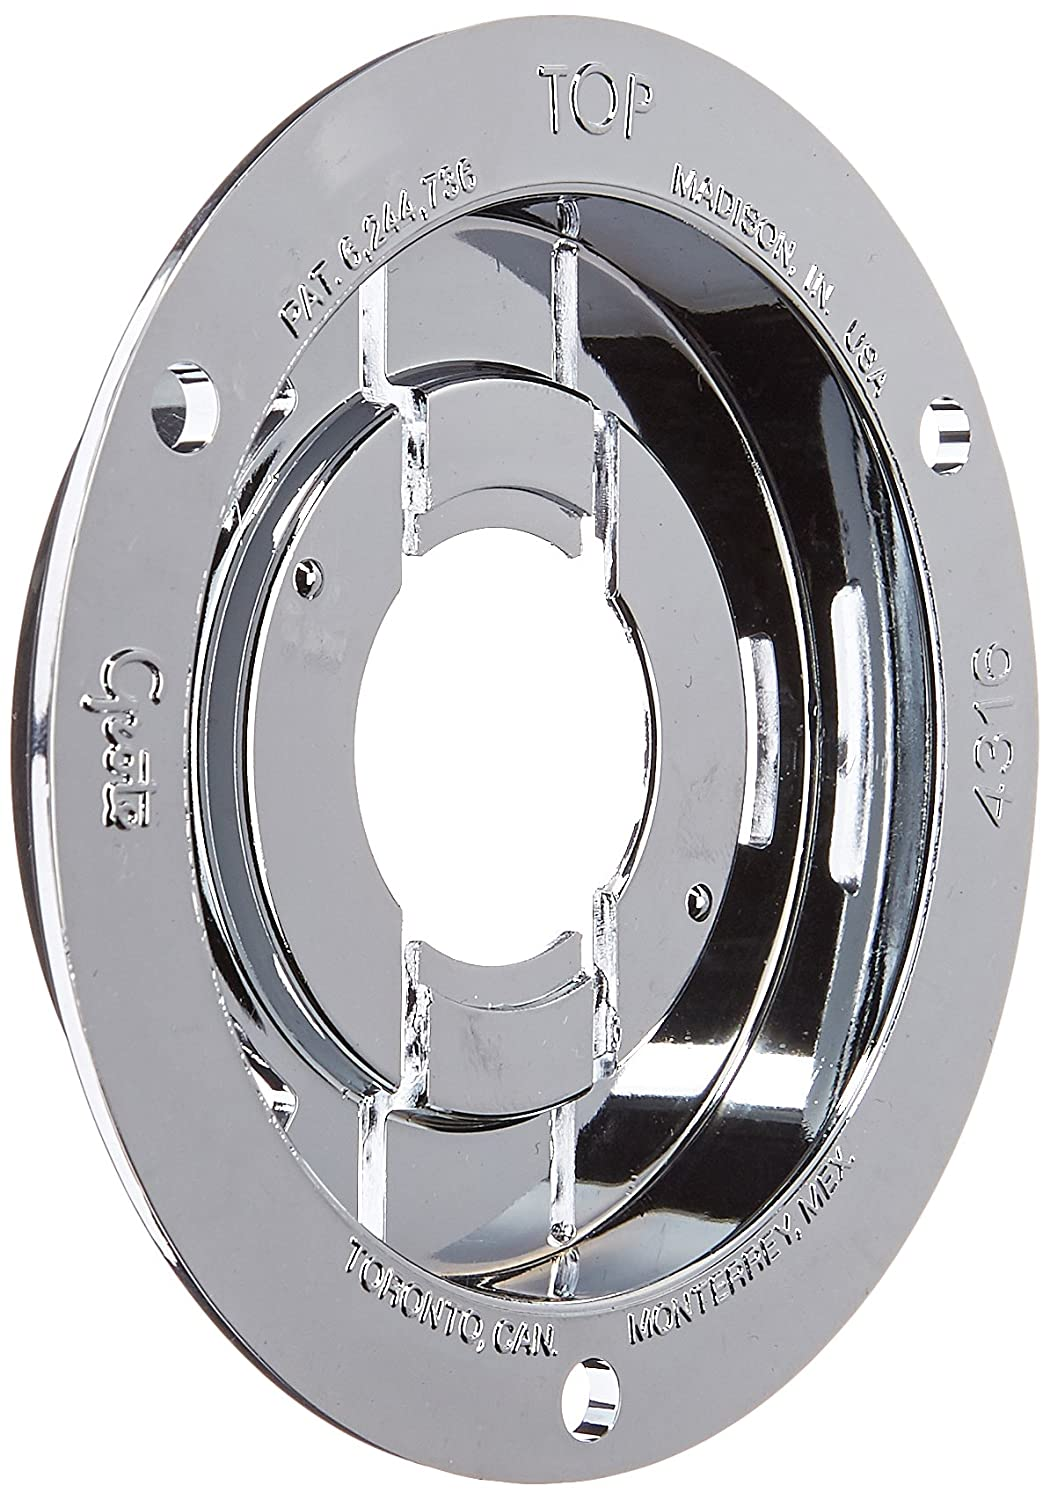 Grote 43163 Chrome Theft-Resistant Mounting Flange & Pigtail Retention Cap (For 2 1/2' Round Lights)